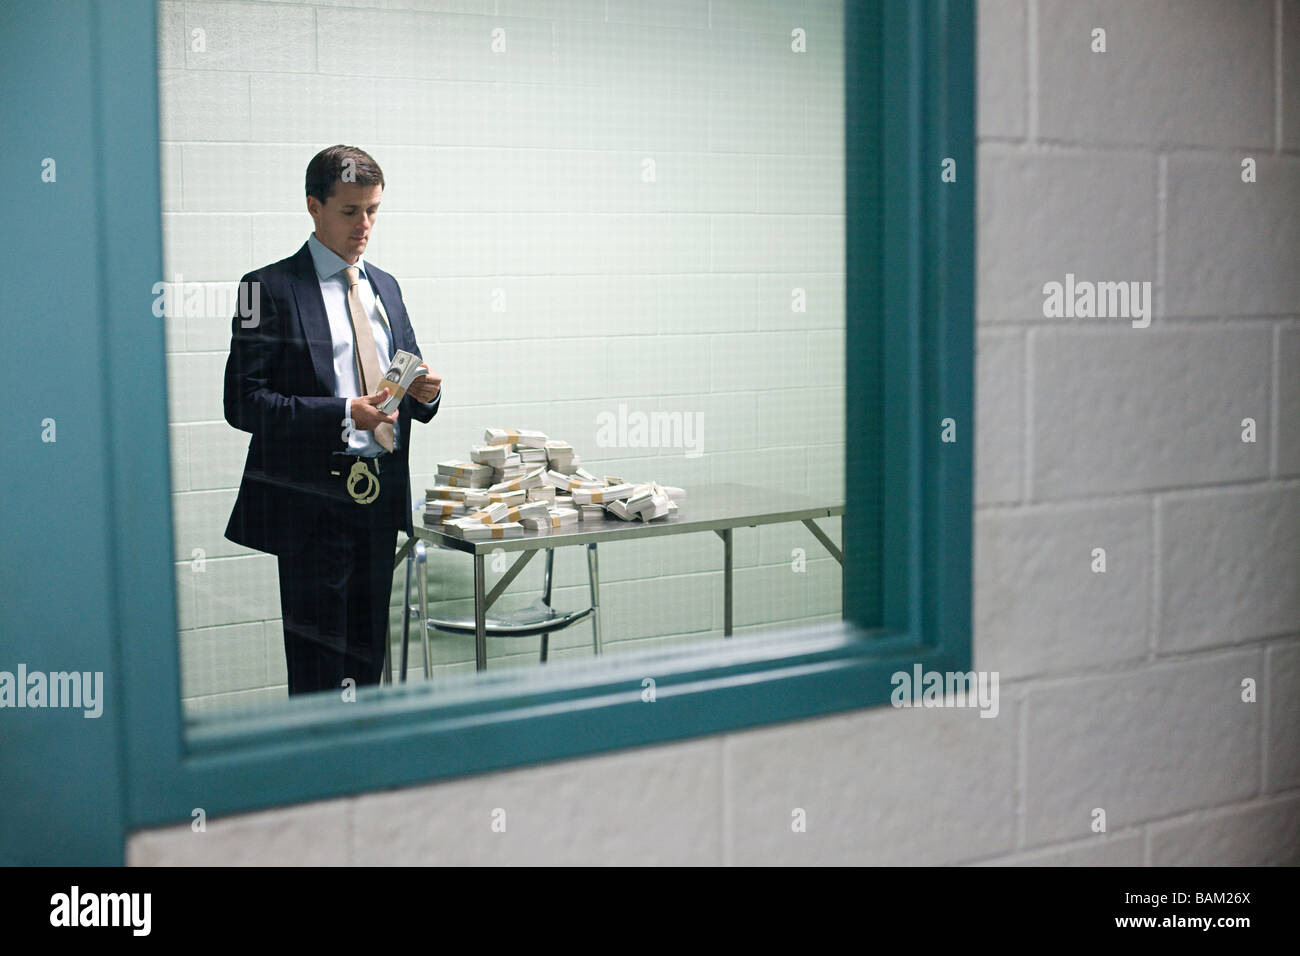 Detective looking at money - Stock Image